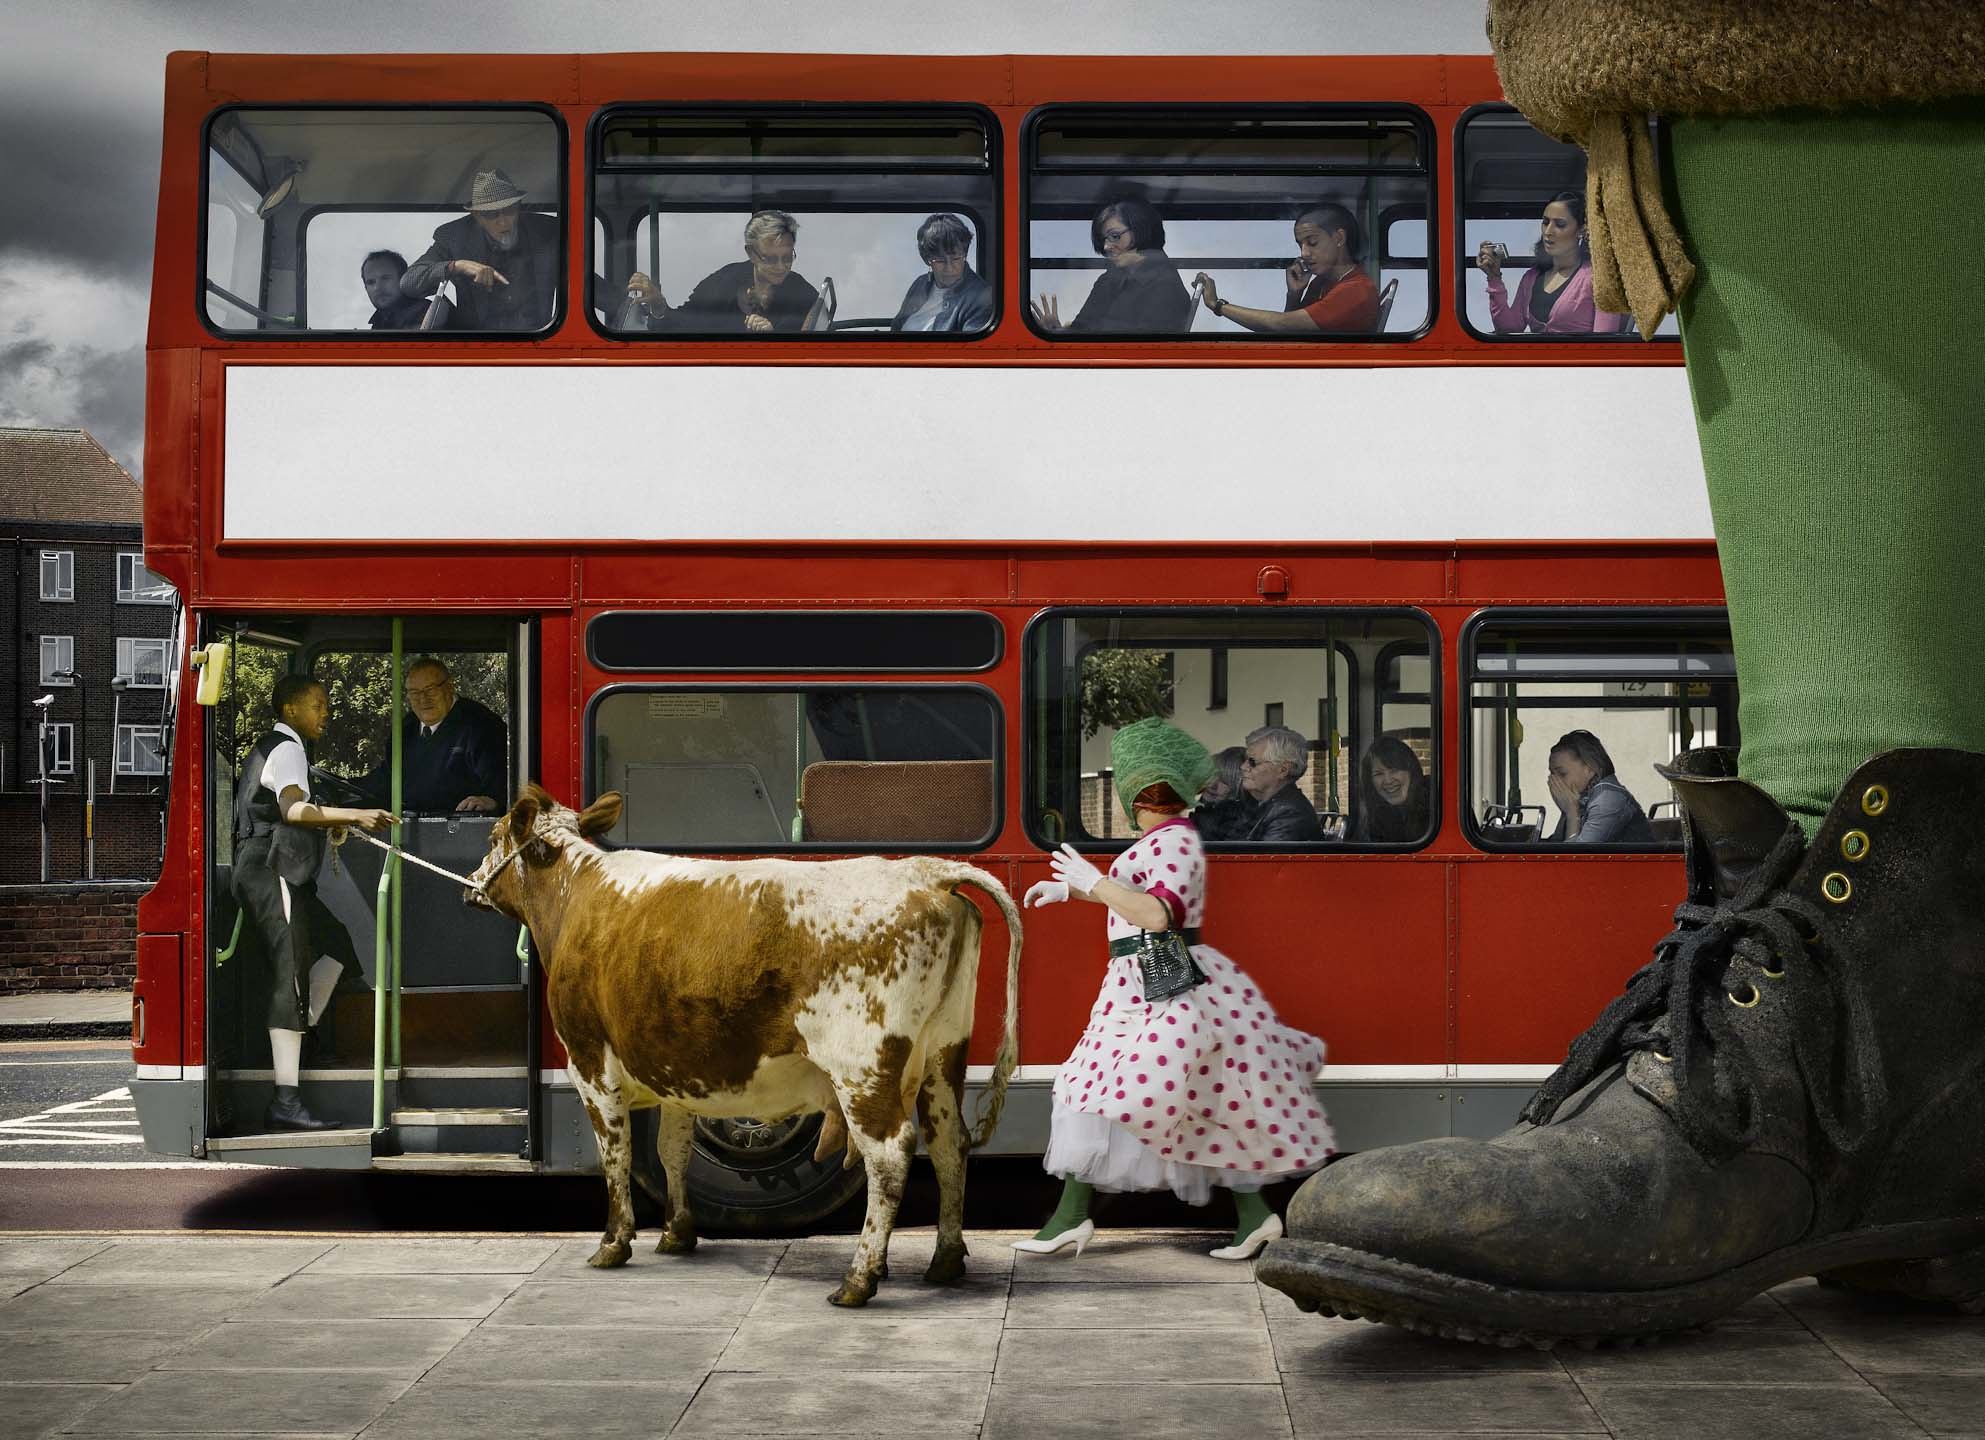 Alex Howe animal cow with fairy tale characters getting on red London  bus with onlookers